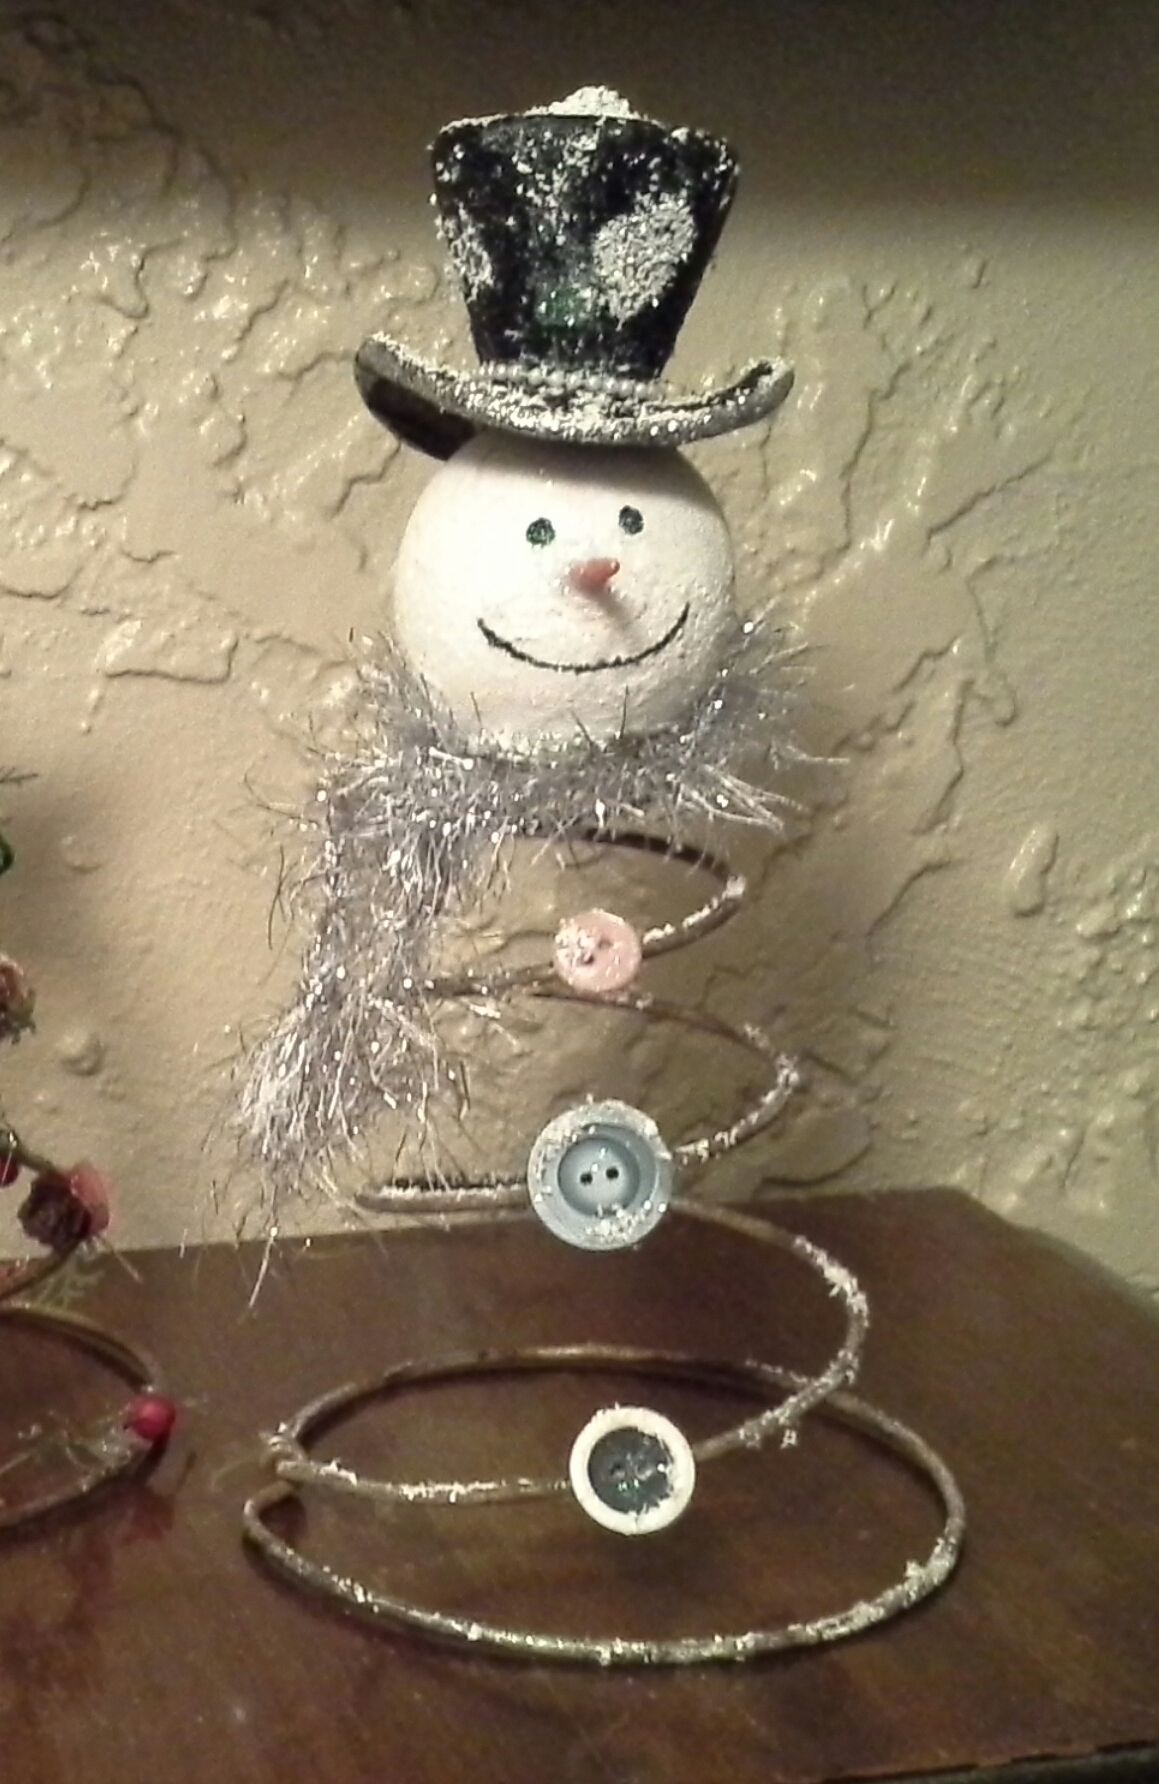 Squeaky Box Spring >> Bed spring snowman | Mattresses | Pinterest | Snowman, Spring and Craft